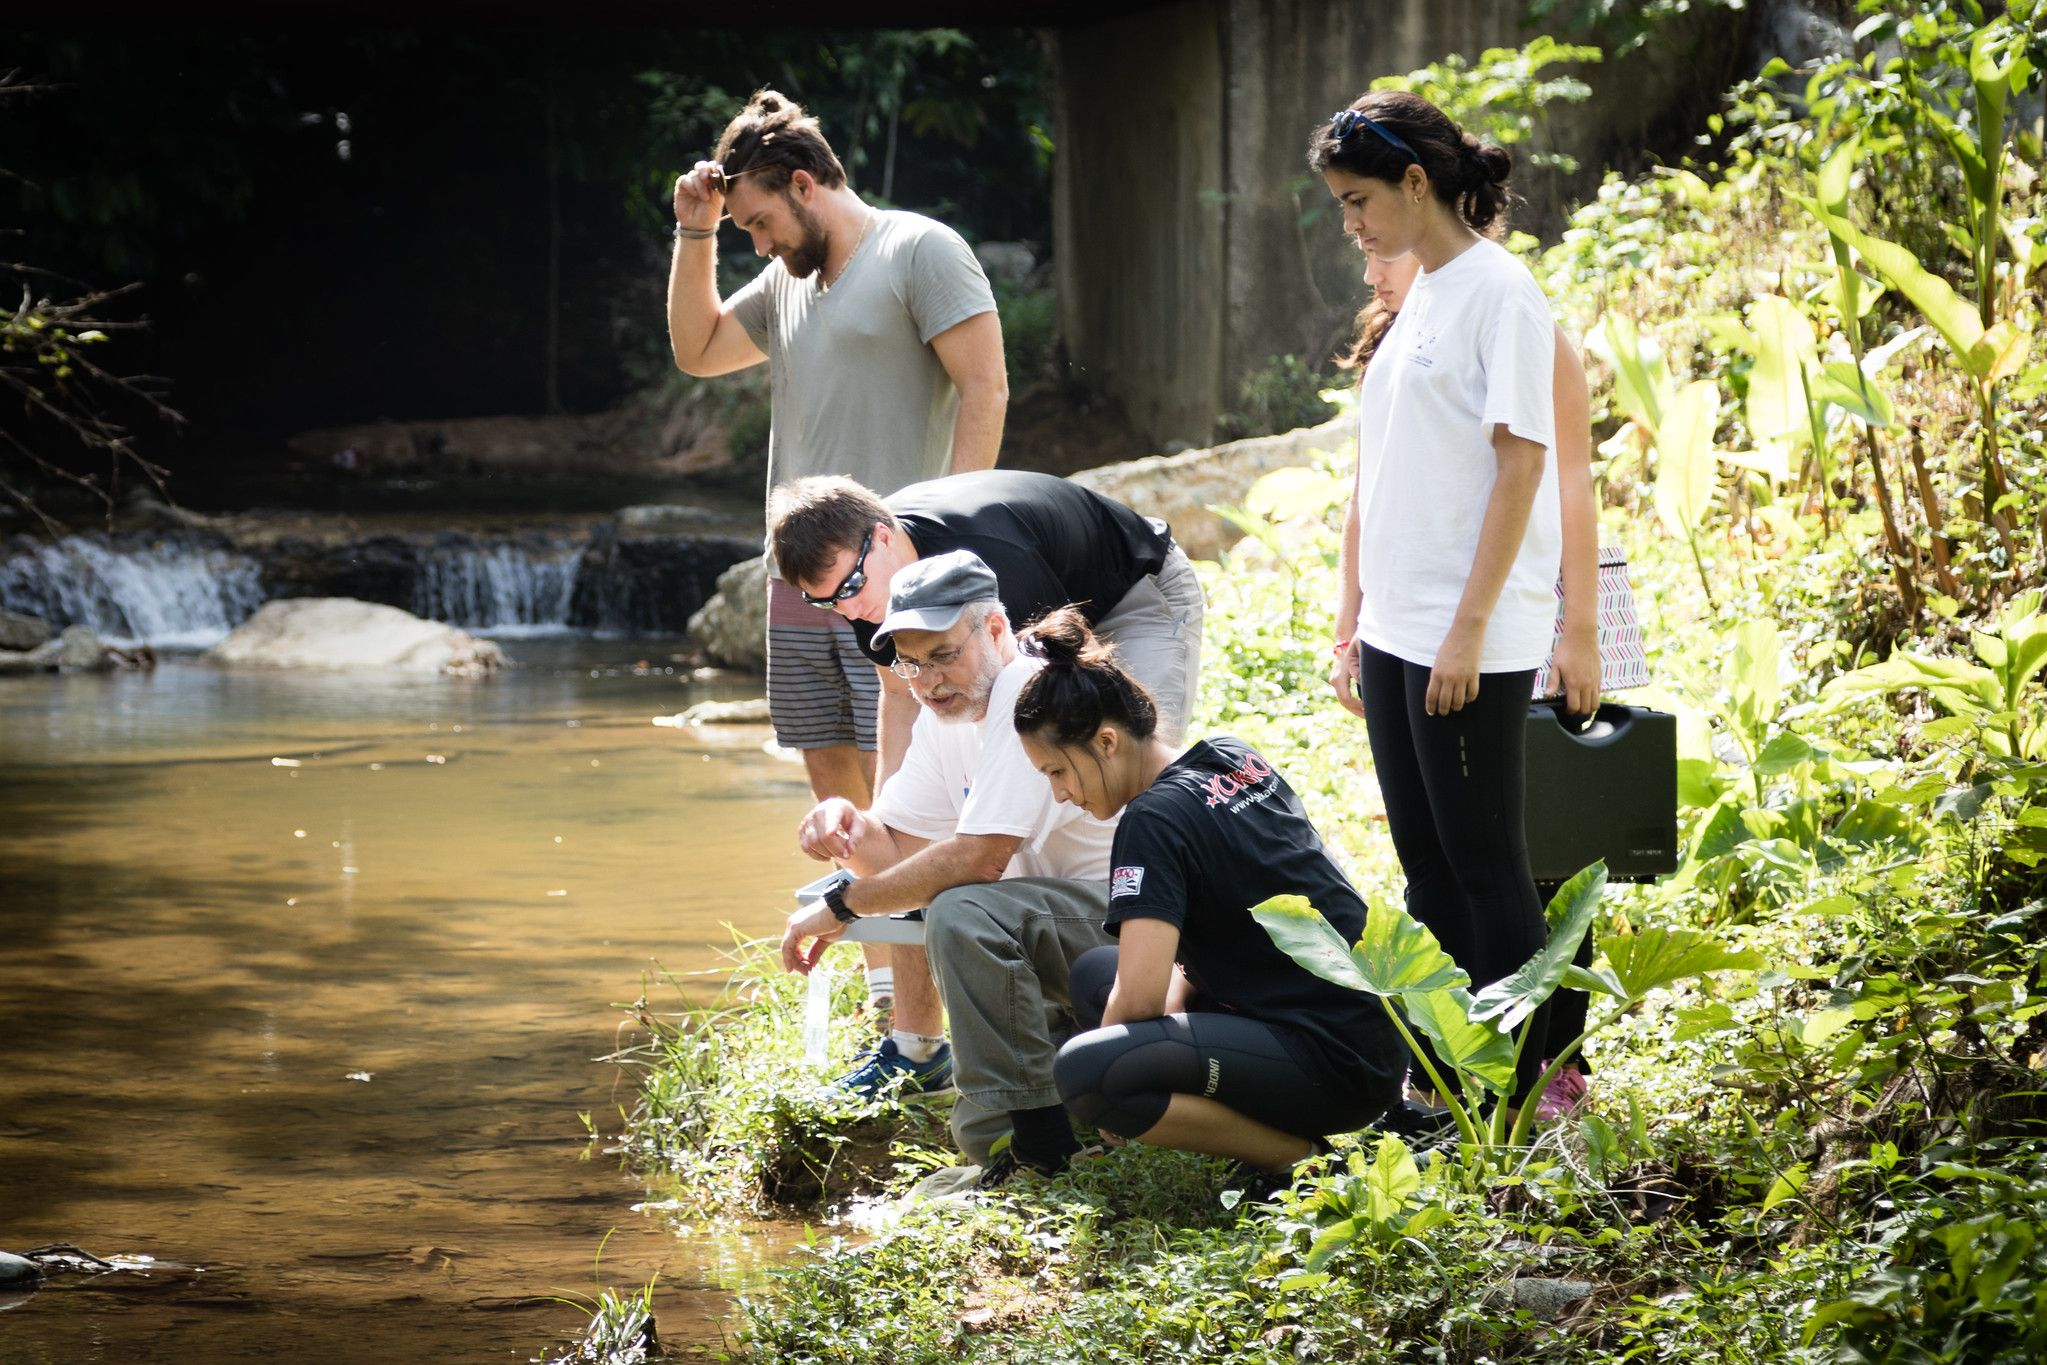 Chemistry professor Pedro Bernal and his students examine a shallow creek in the Dominican Republic.